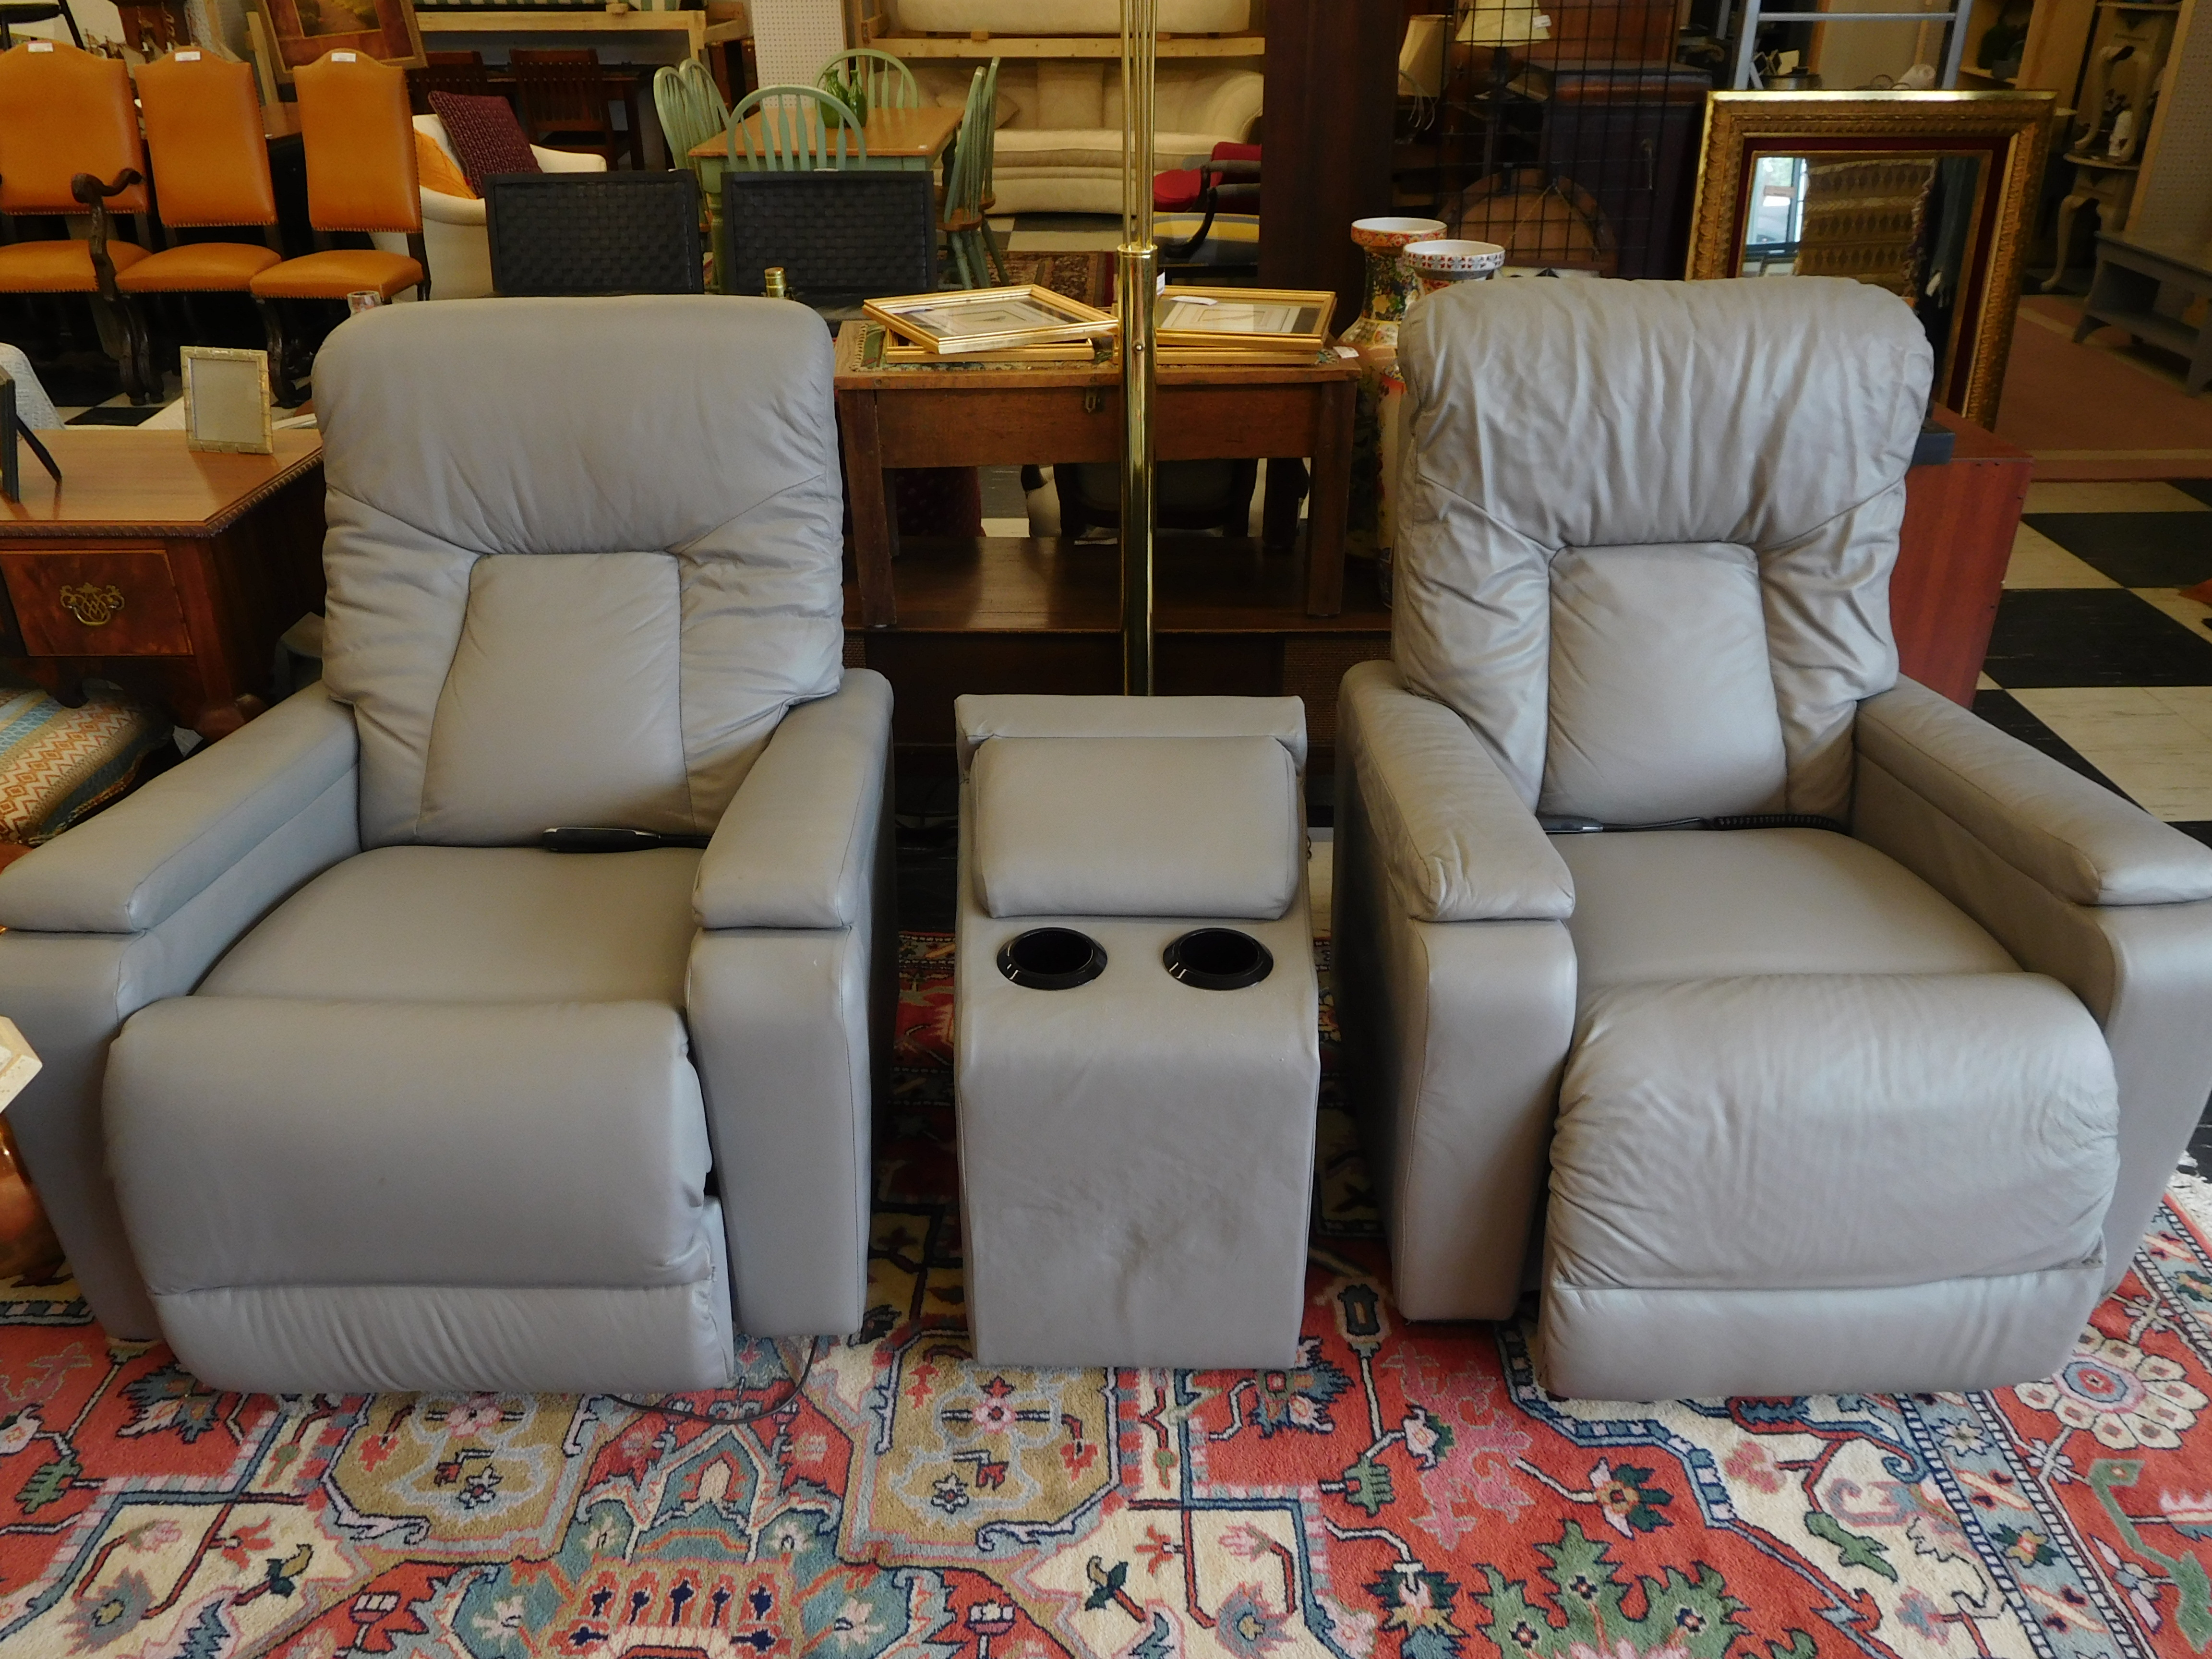 3-Piece Grey La-Z-Boy Theater Recliner Set in Excellent Condition!